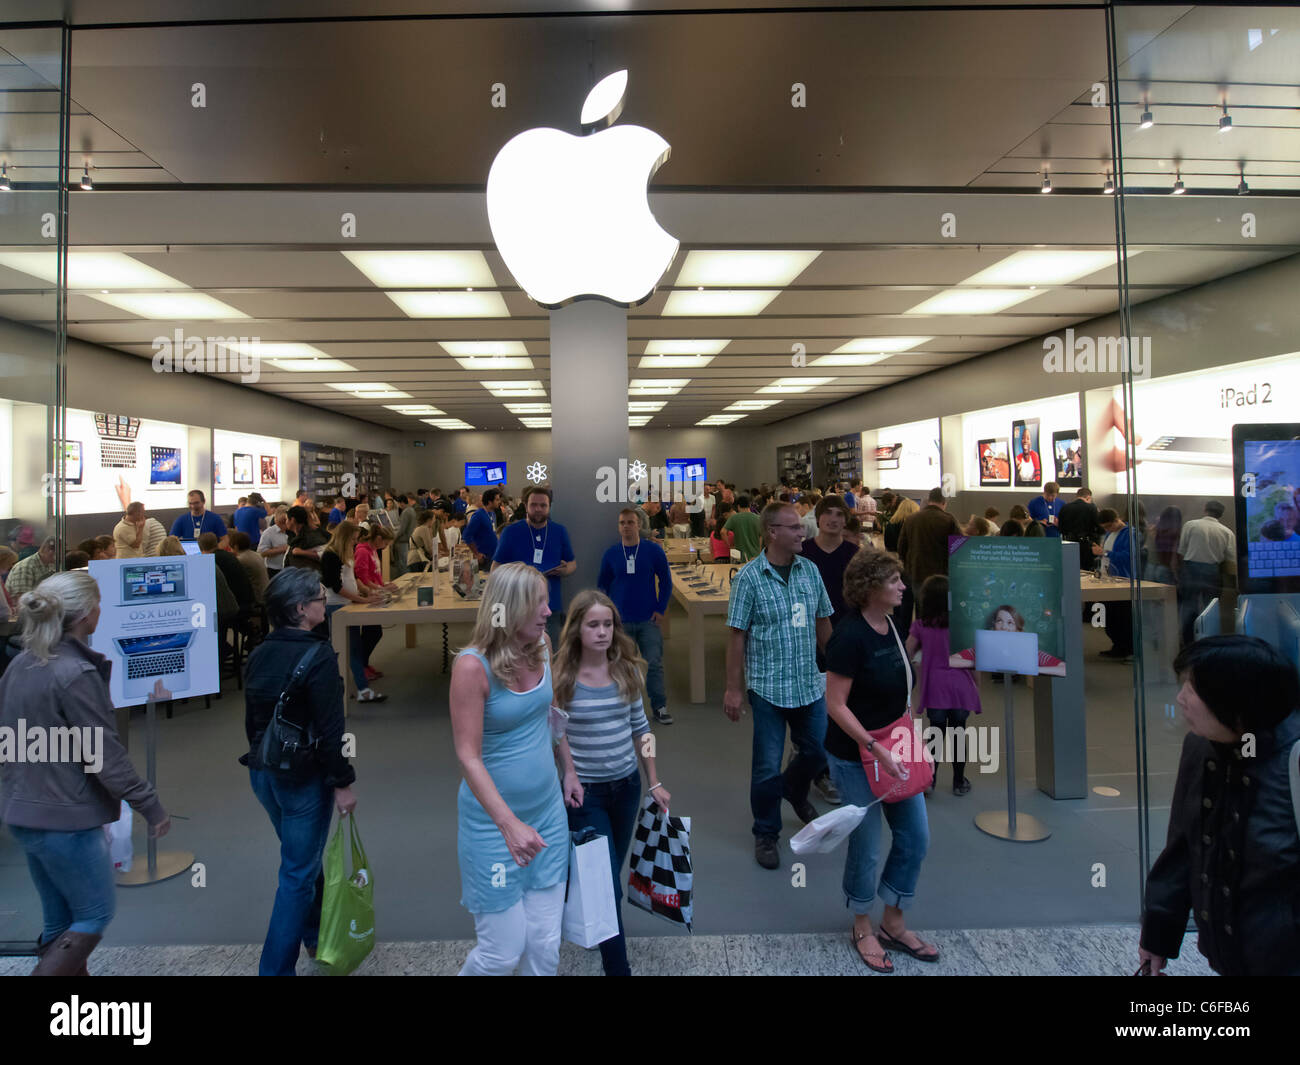 Busy Apple shop at Centro one of Europe's largest shopping mall in Oberhausen Germany - Stock Image